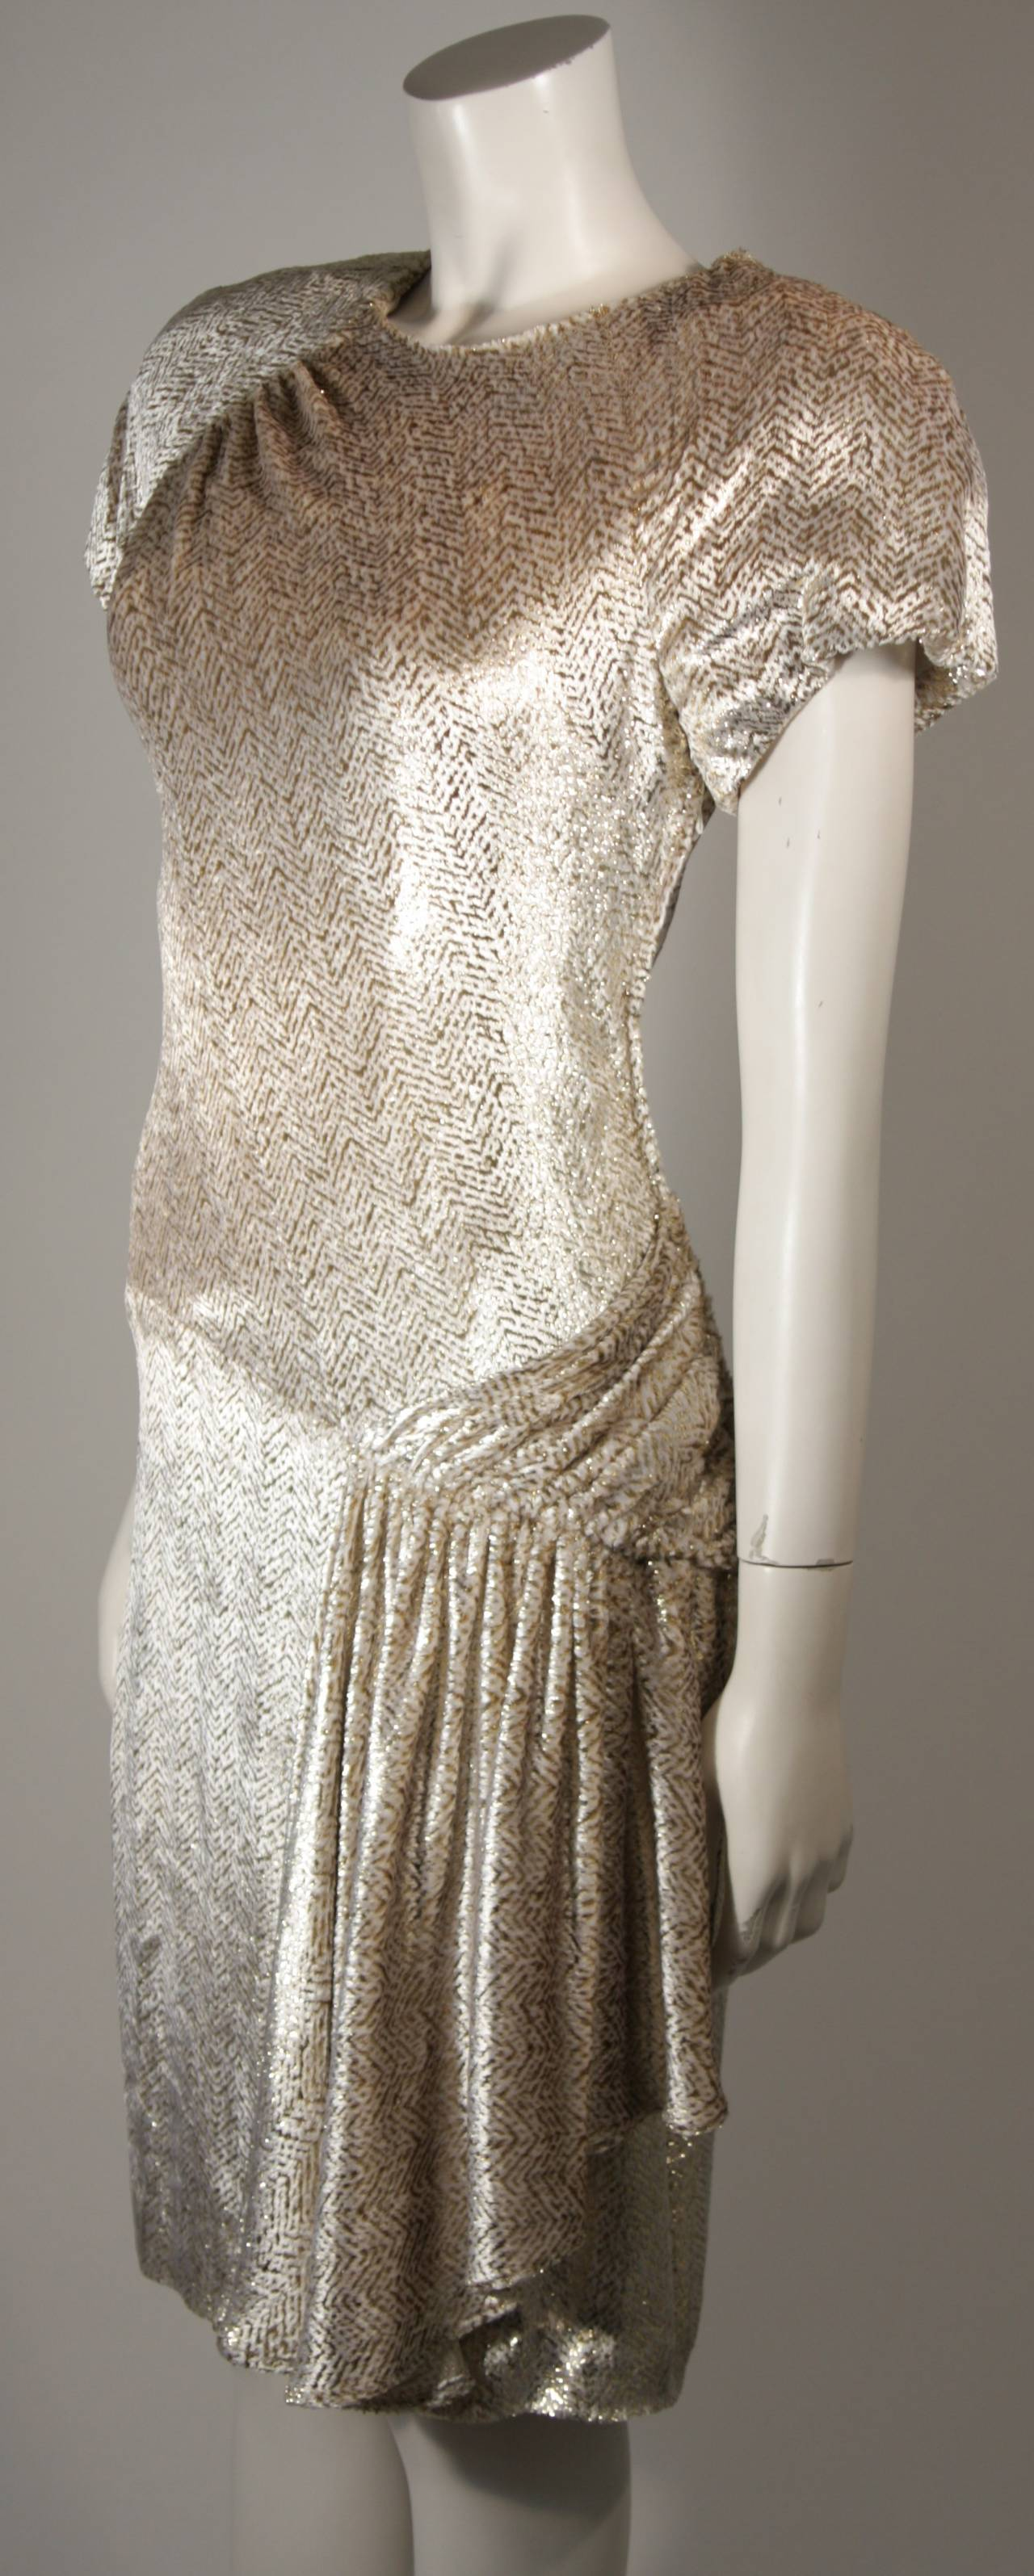 Vicky Tiel Ivory and Gold Velvet Texture Cocktail Dress Size 38 In Excellent Condition For Sale In Los Angeles, CA